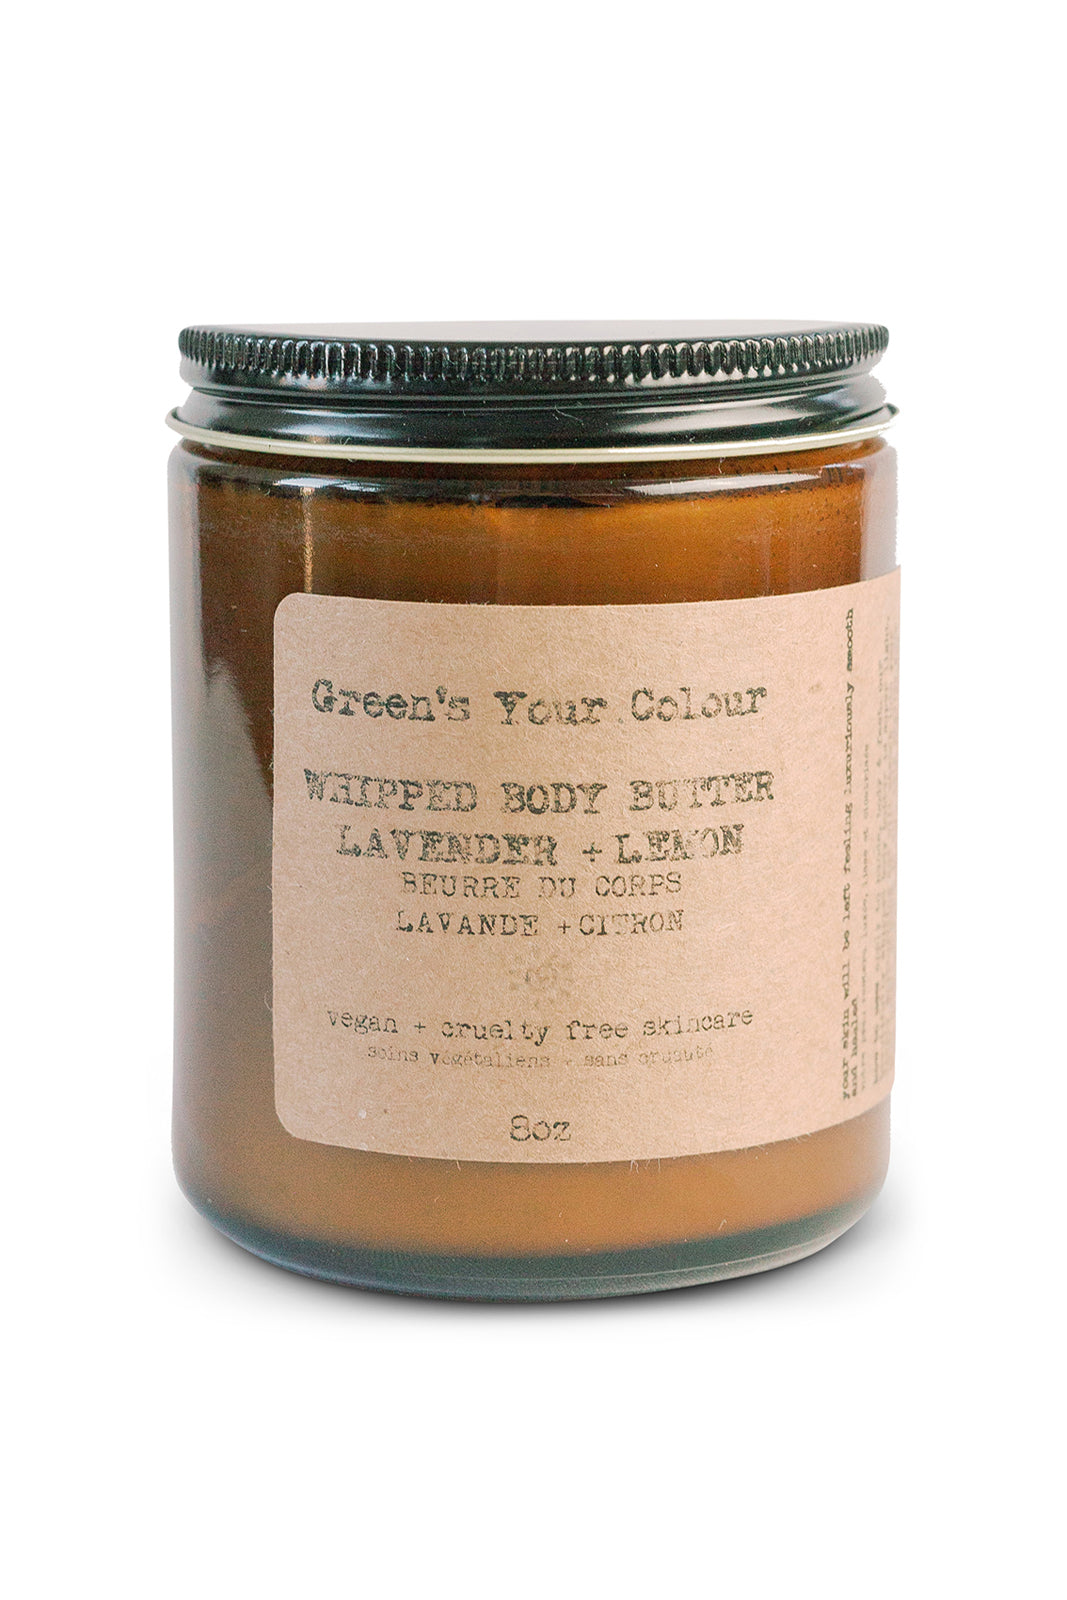 WHIPPED BODY BUTTER LAVENDER + LEMON